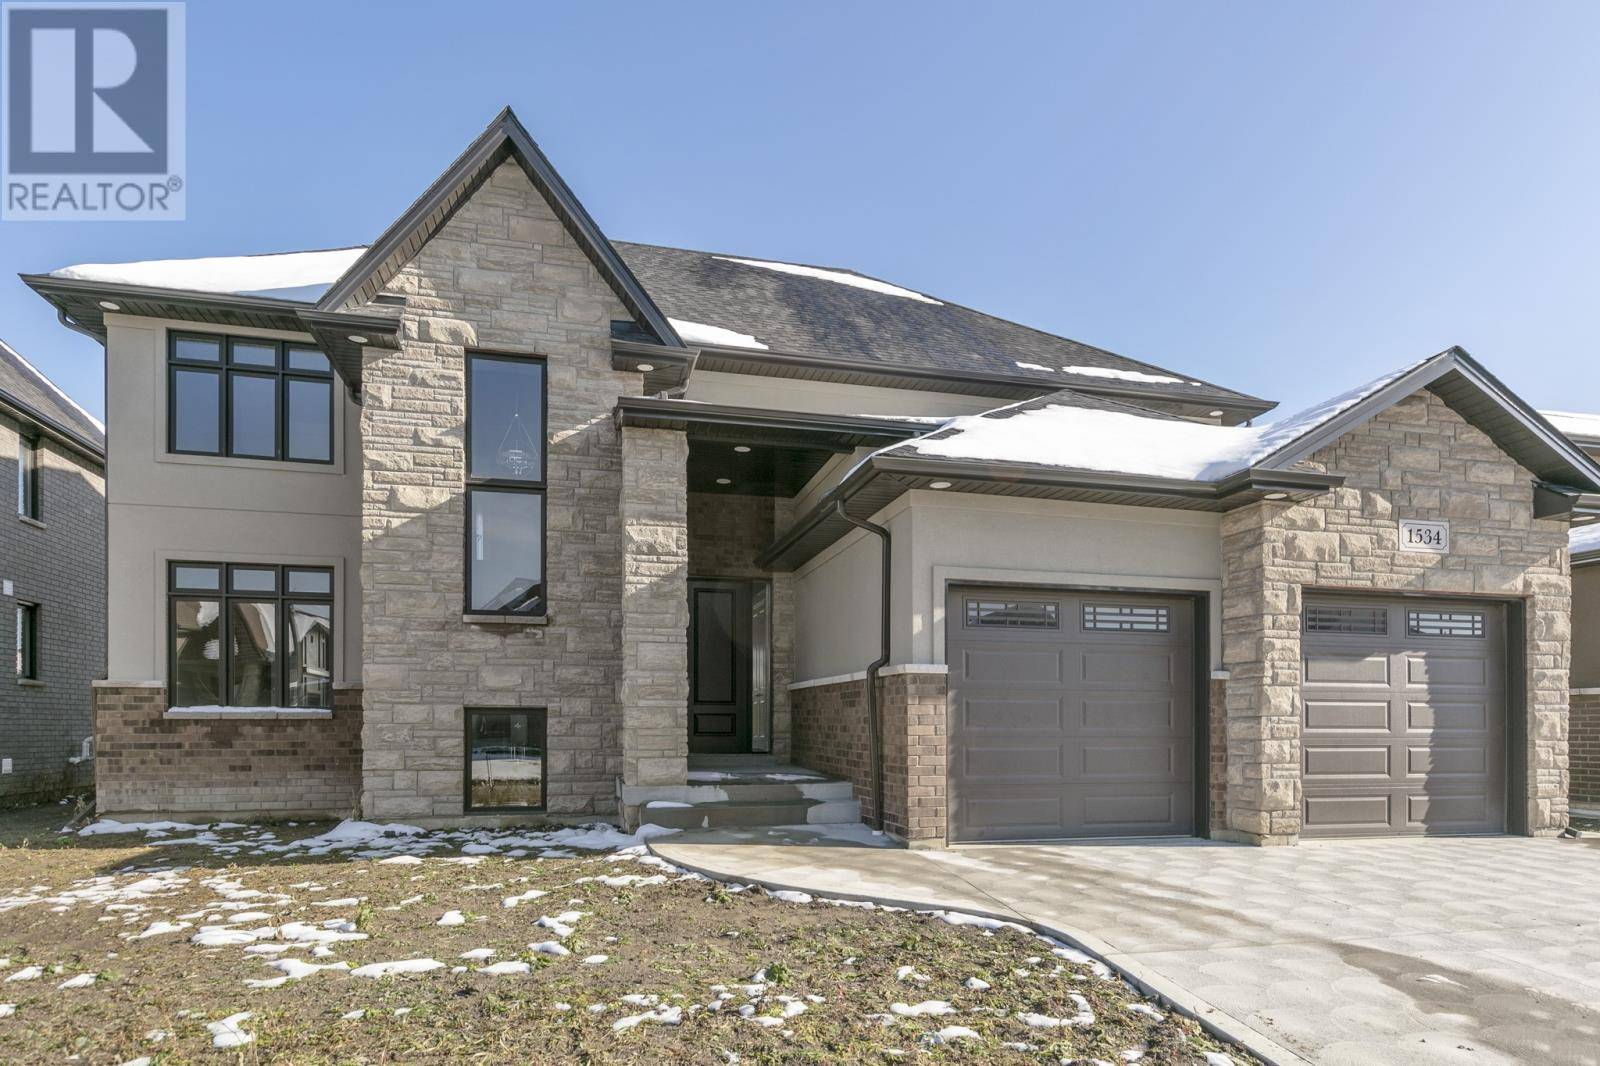 House for sale at 1534 Monticello  Windsor Ontario - MLS: 19028524